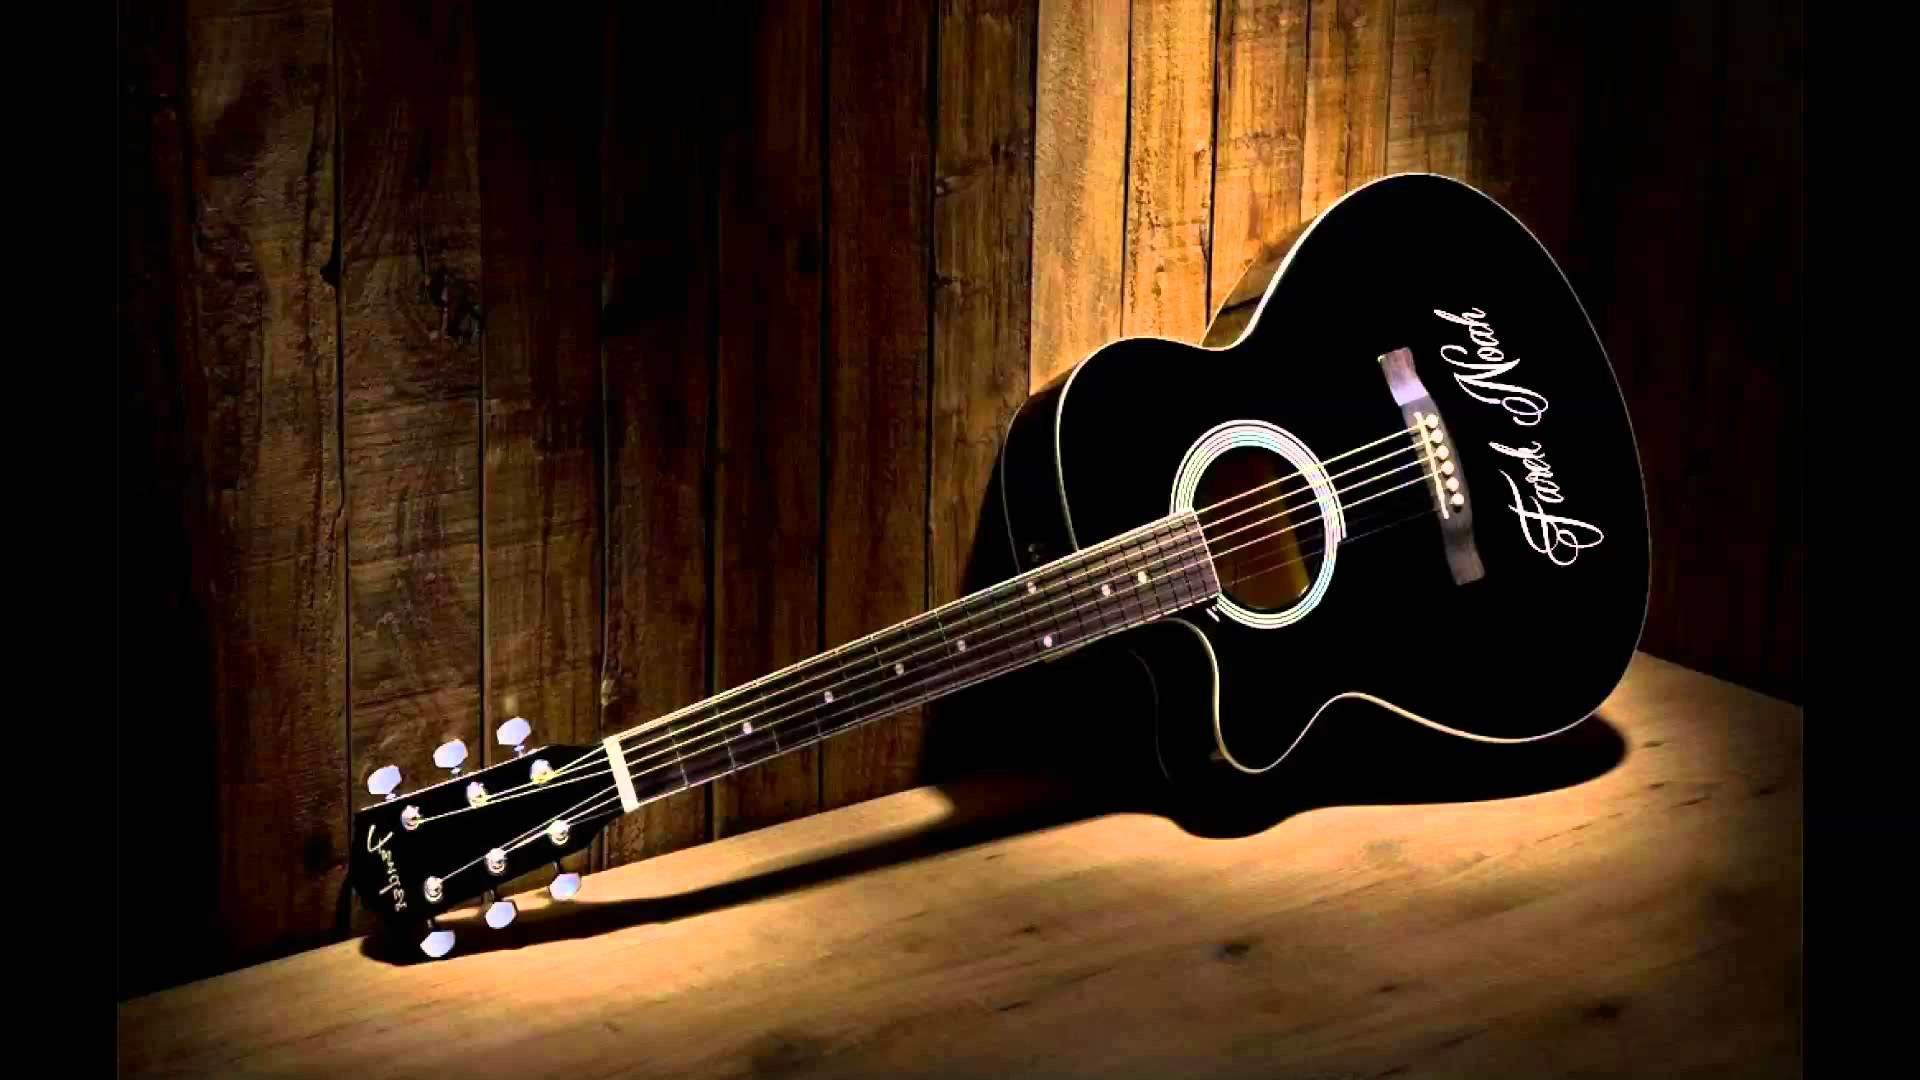 Acoustic Guitar Wallpaper Hd 69 Images